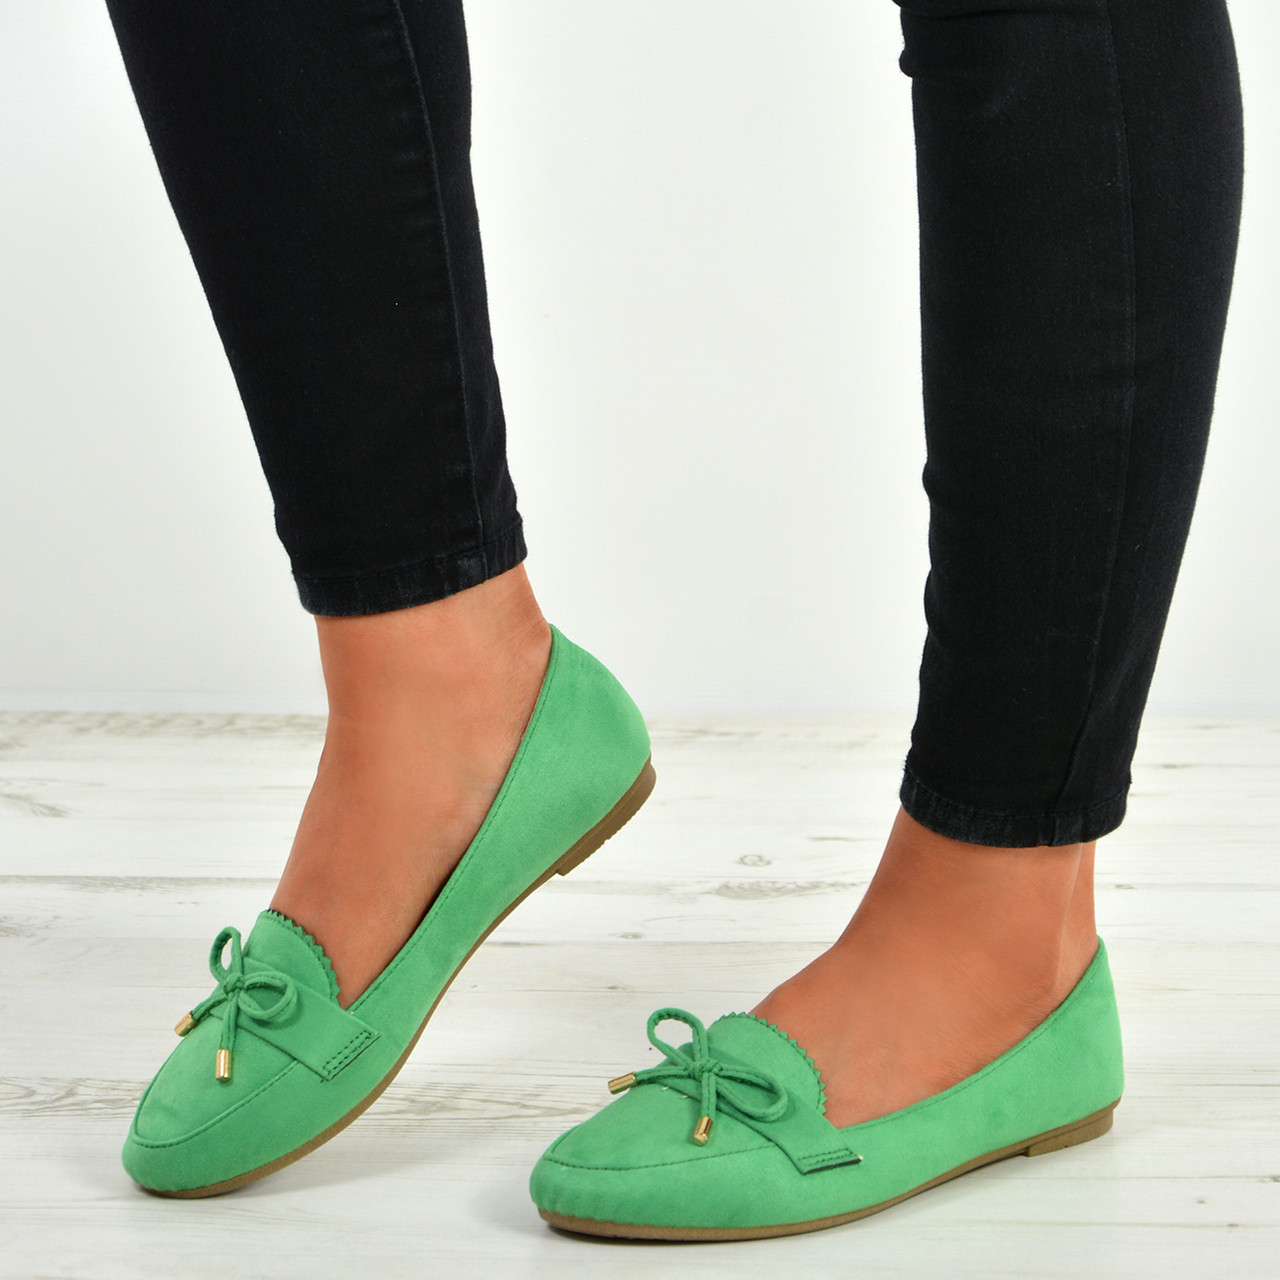 Ladies Faux Suede Low Flat Pumps Mujer Slip on zapatos Bow Ballerina Dolly Ballet zapatos on b51a33